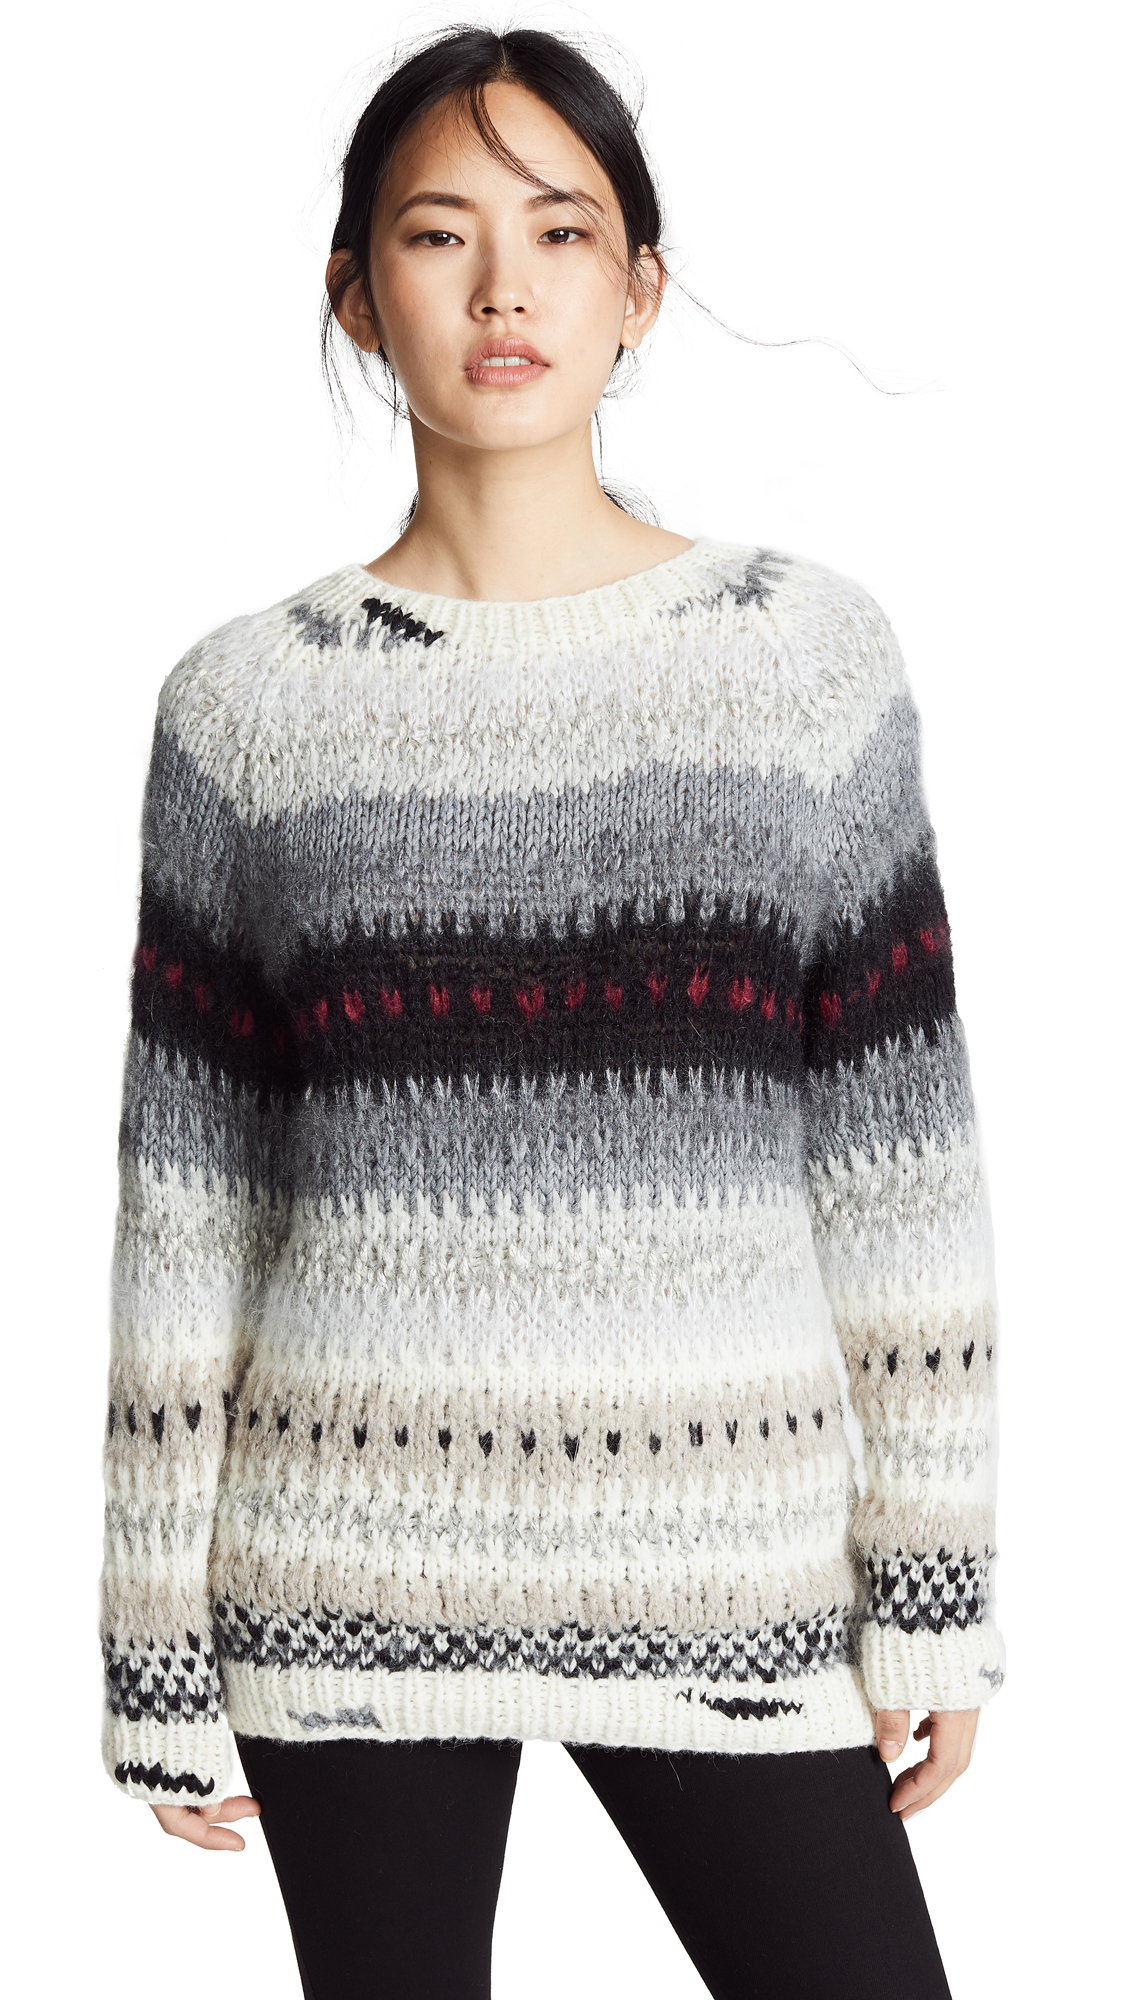 ONE ON ONE Safety Sweater in Ecru/Black